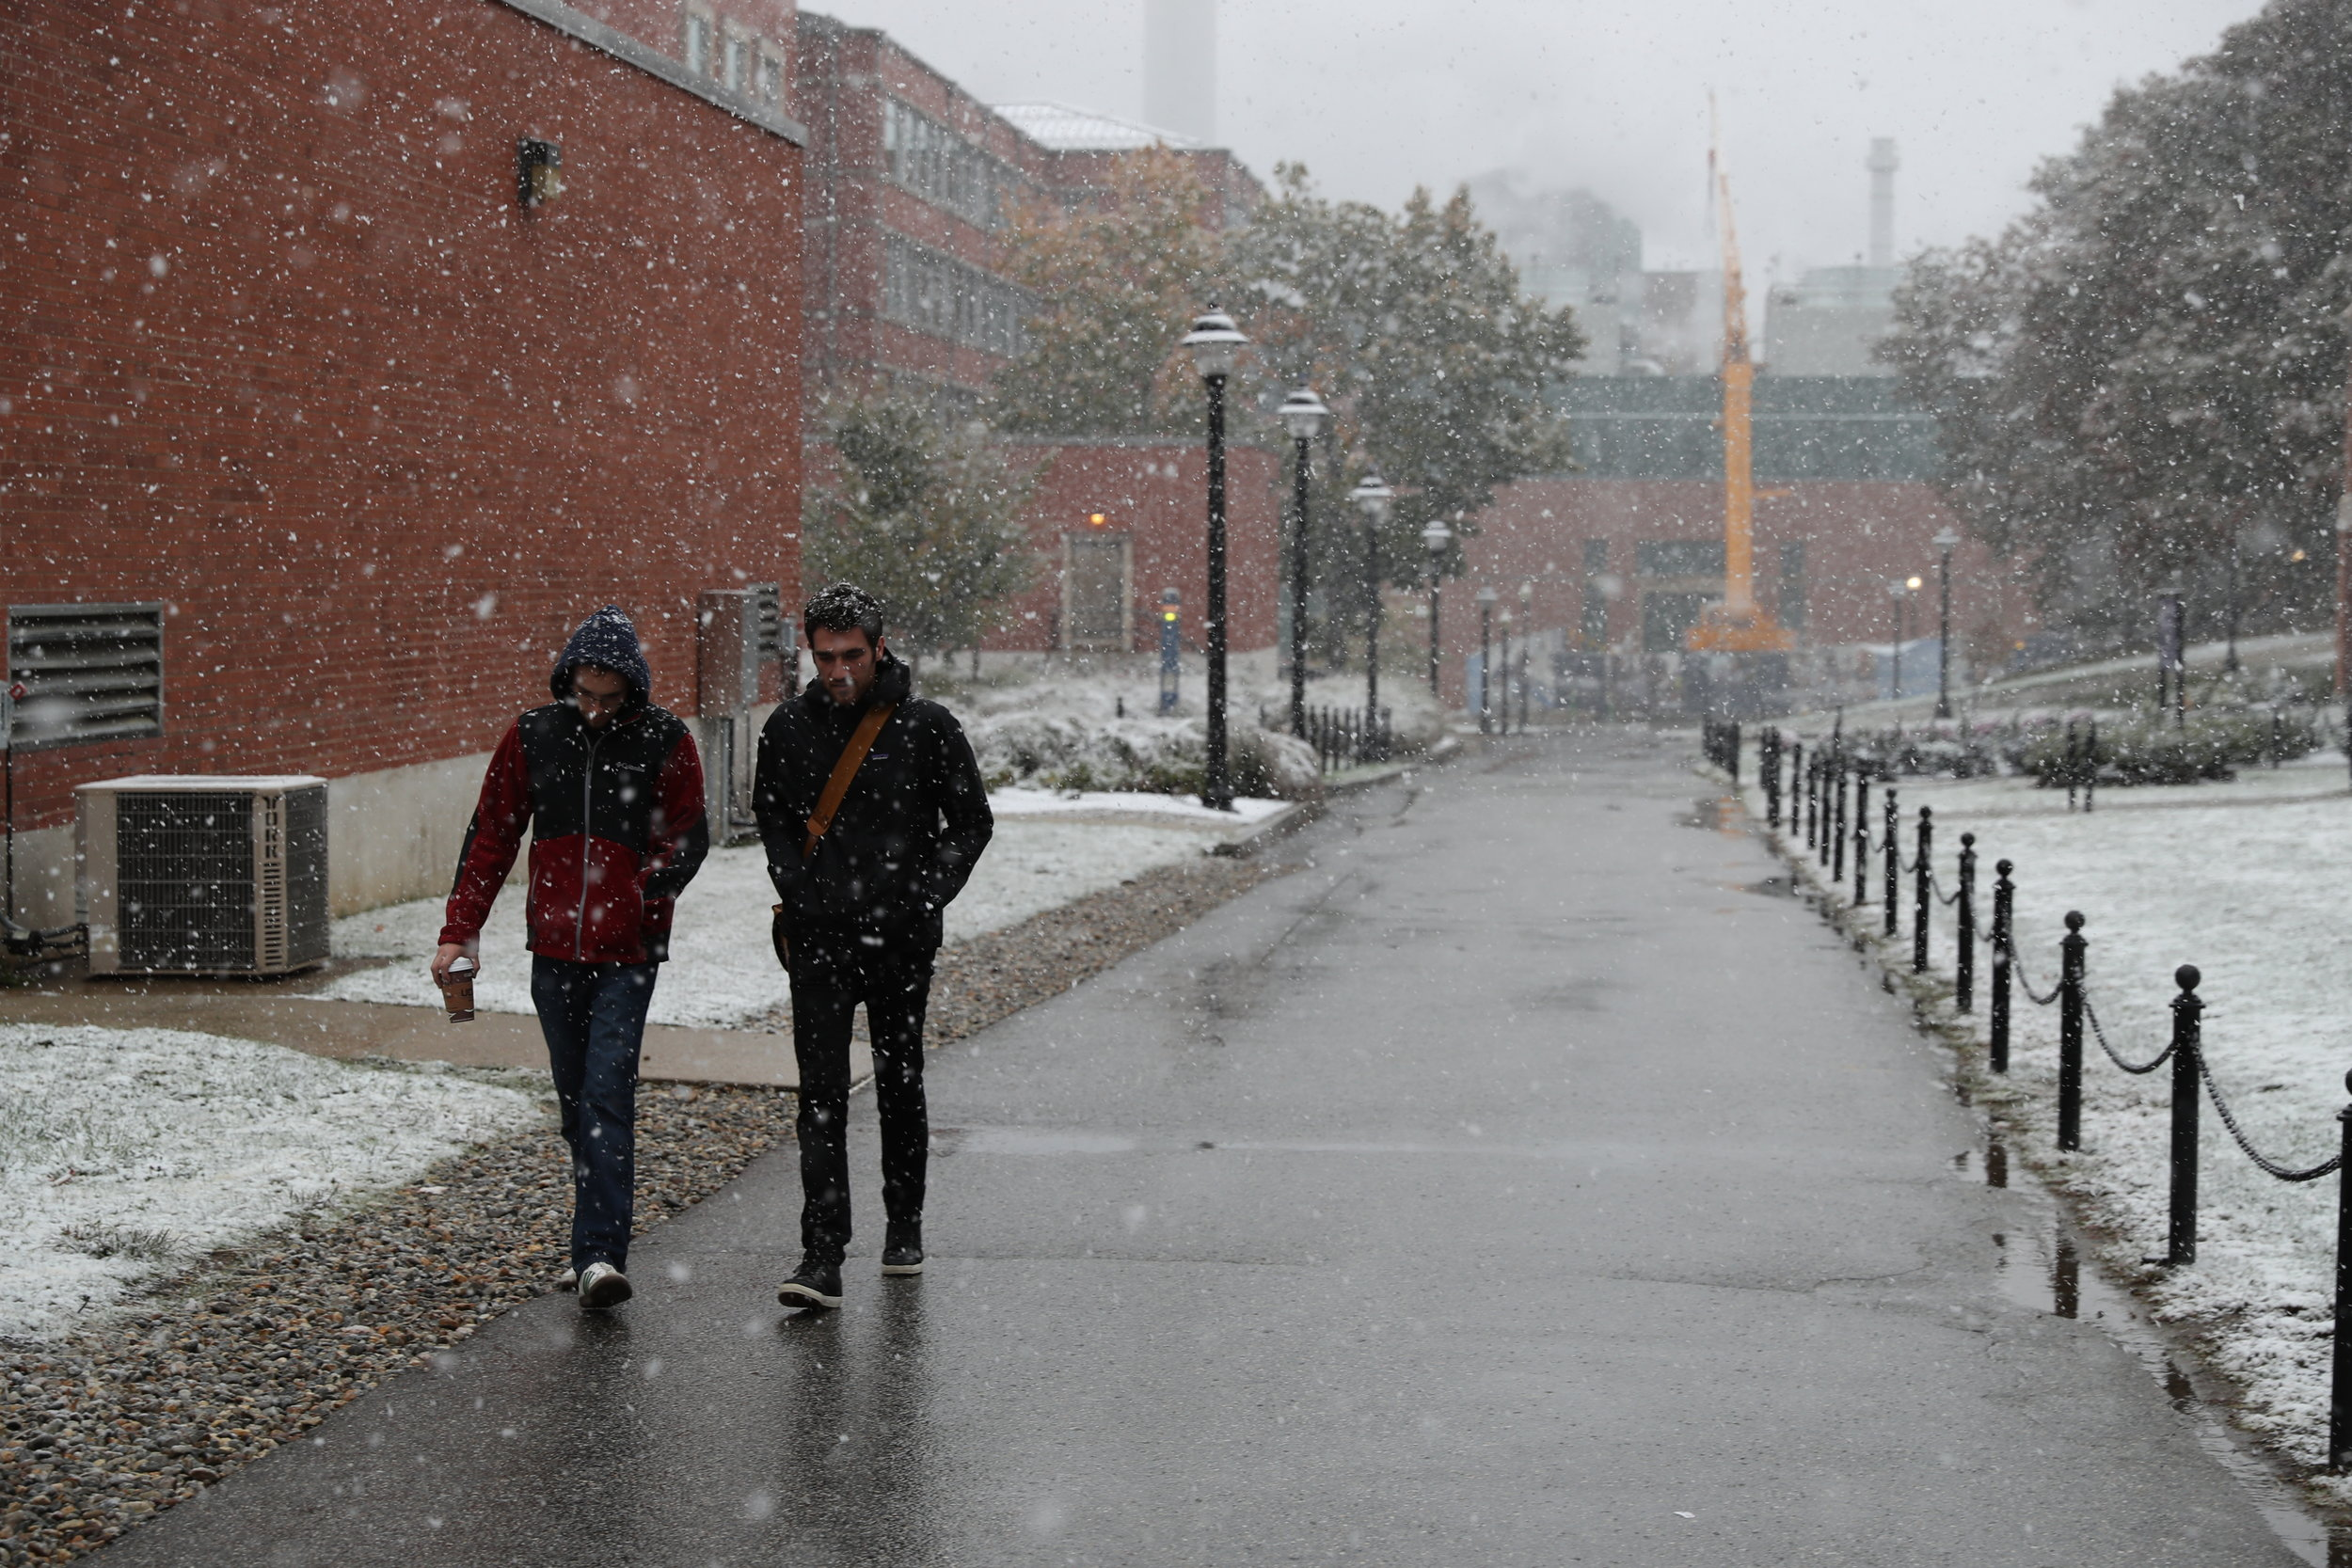 Despite snow being a nuisance in regards to transportation and body heat, some students say a snowy Christmas provides sentimental feelings for the holiday. (File/The Daily Campus)